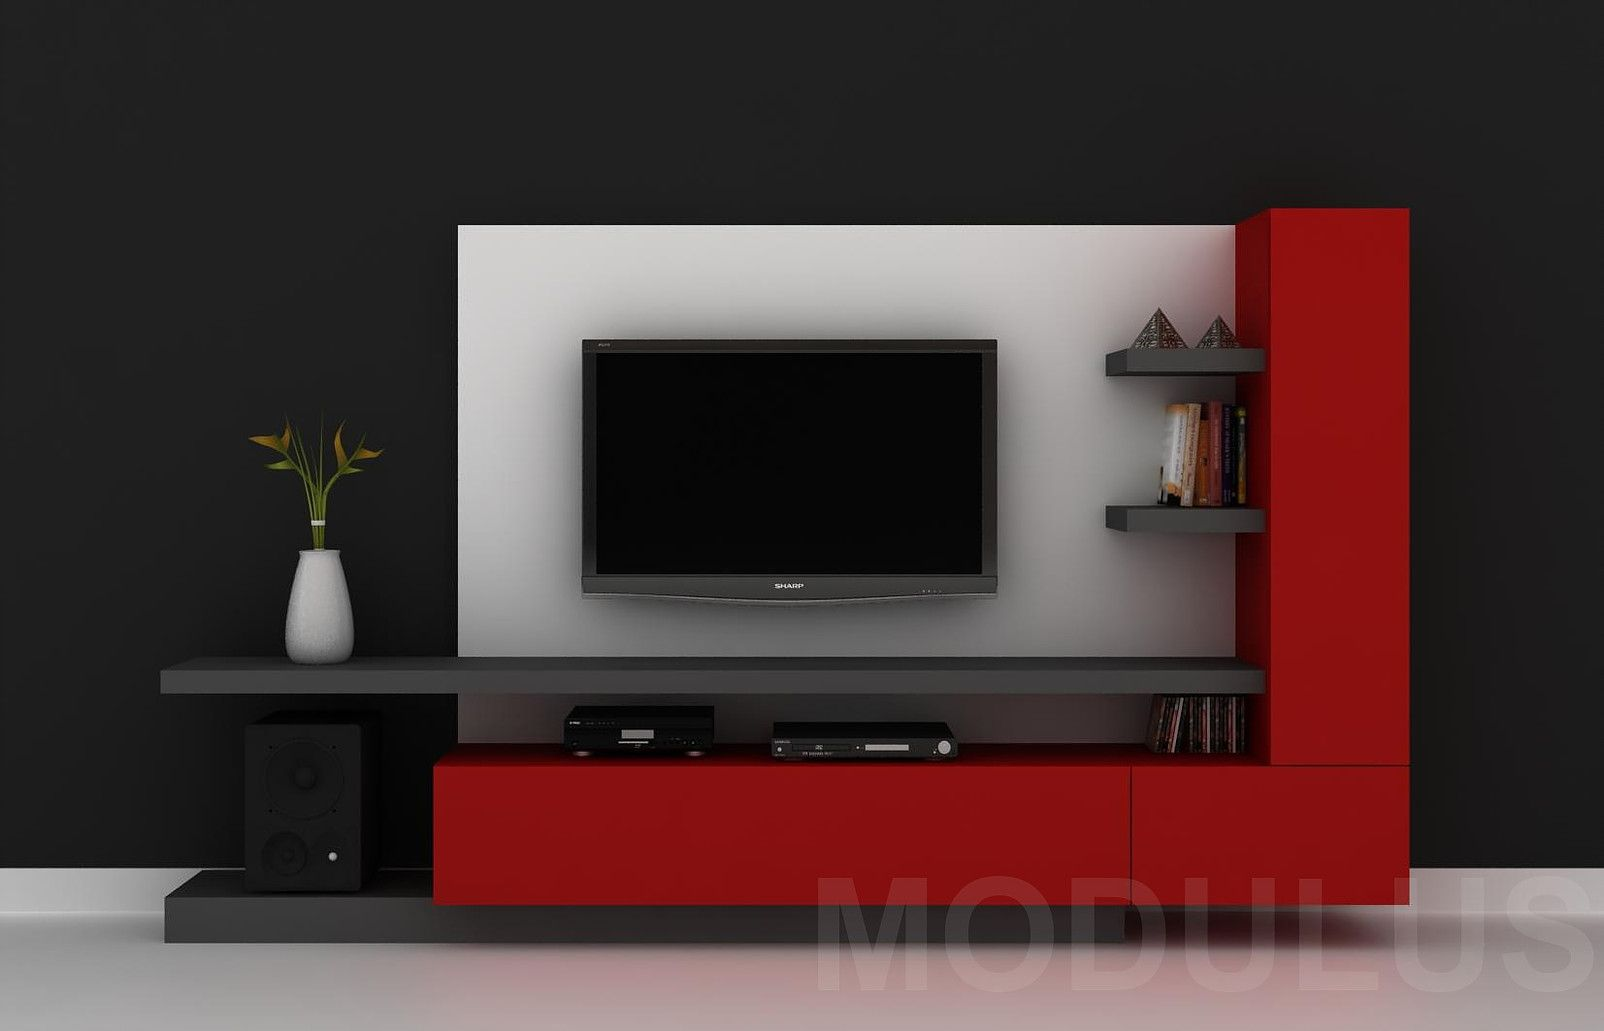 Modulares para living tv lcd led wall unit muebles for Muebles tv esquinero modernos